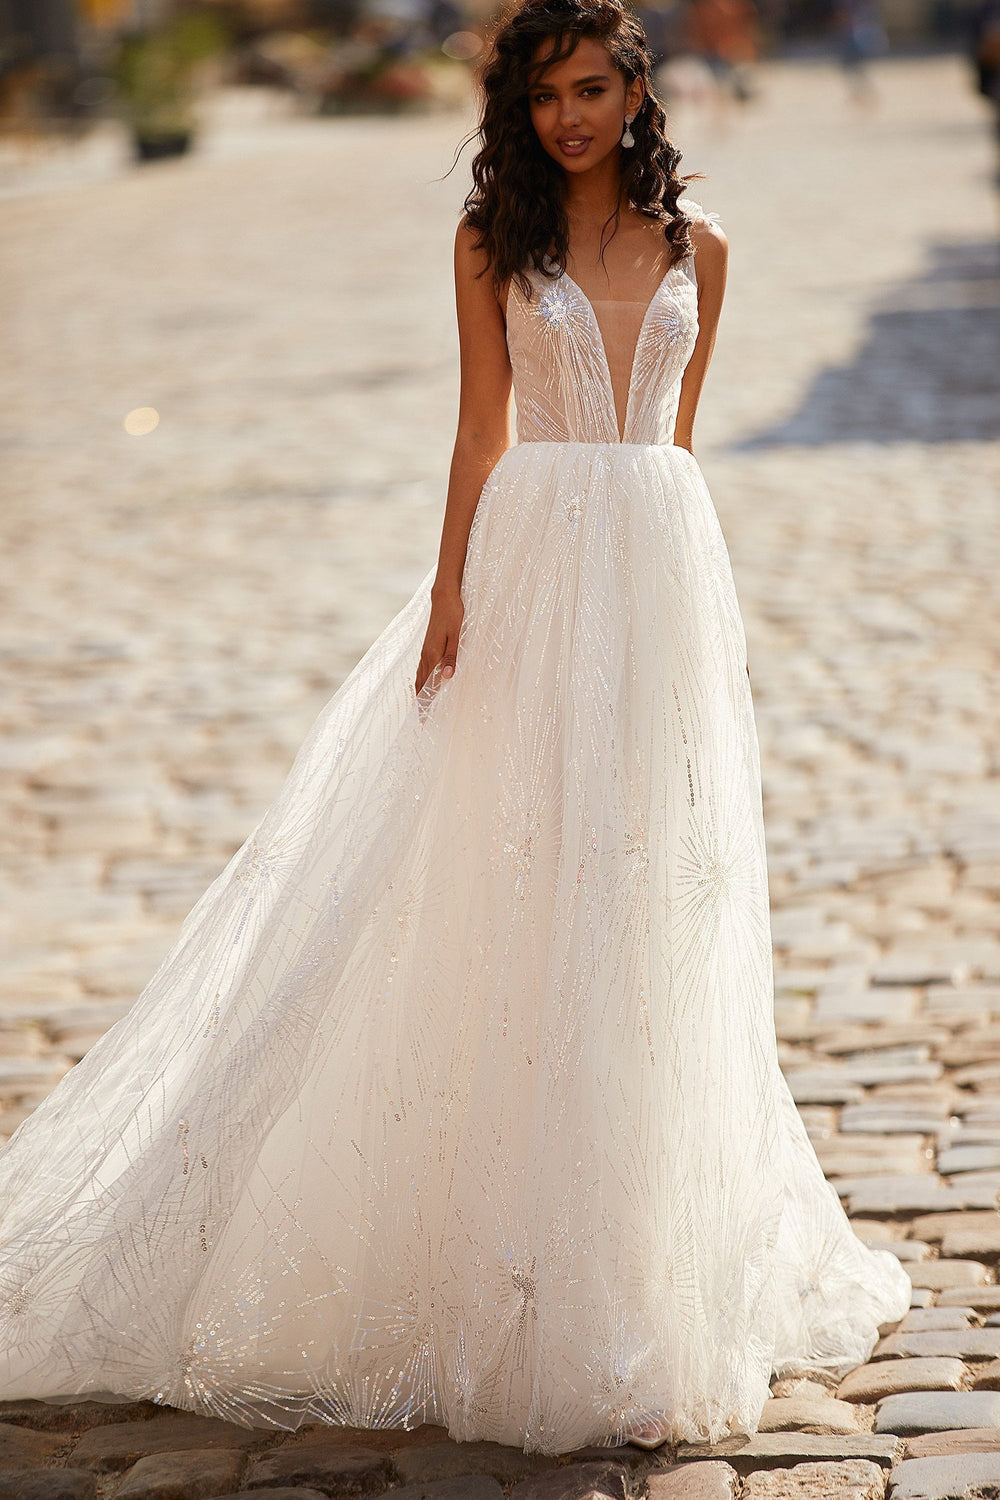 A&N Avery - Shimmering Tulle Boho Bridal Gown with Lace-Up Back